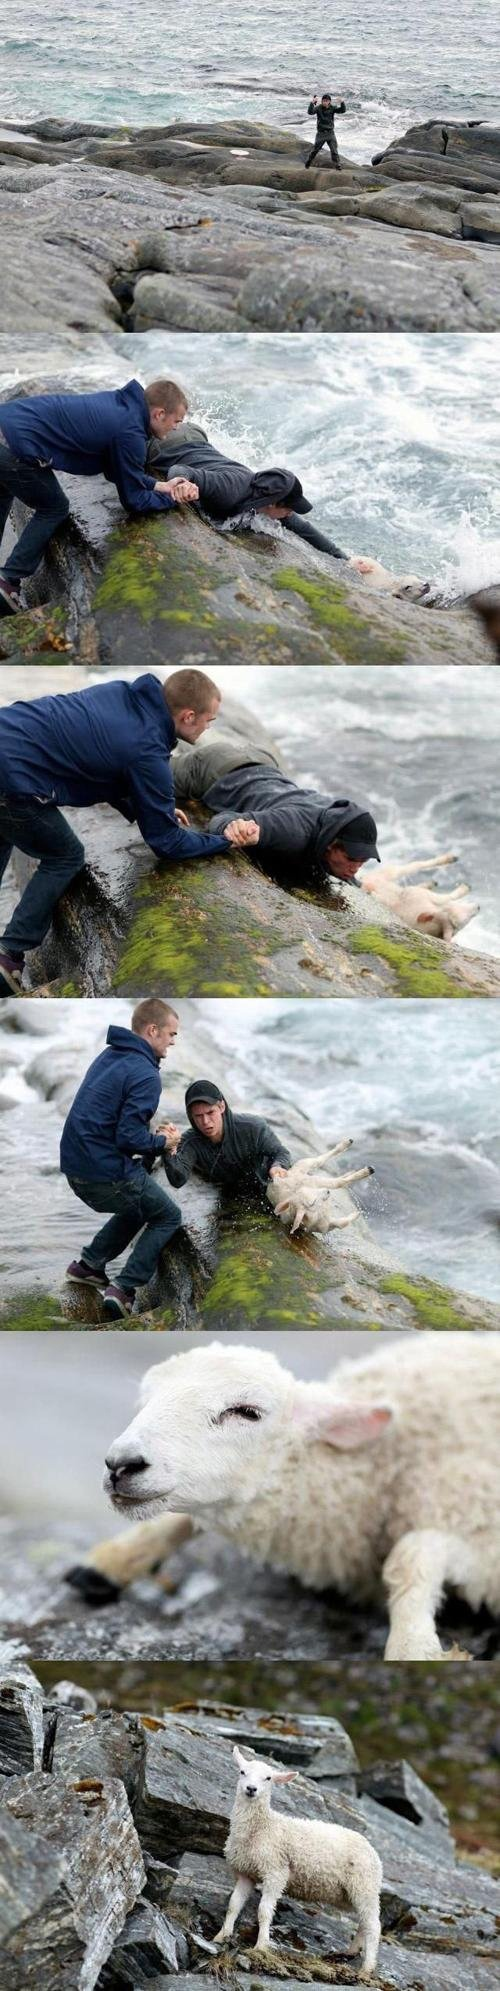 3. This picture of two Norwegian guys rescuing a sheep from the ocean